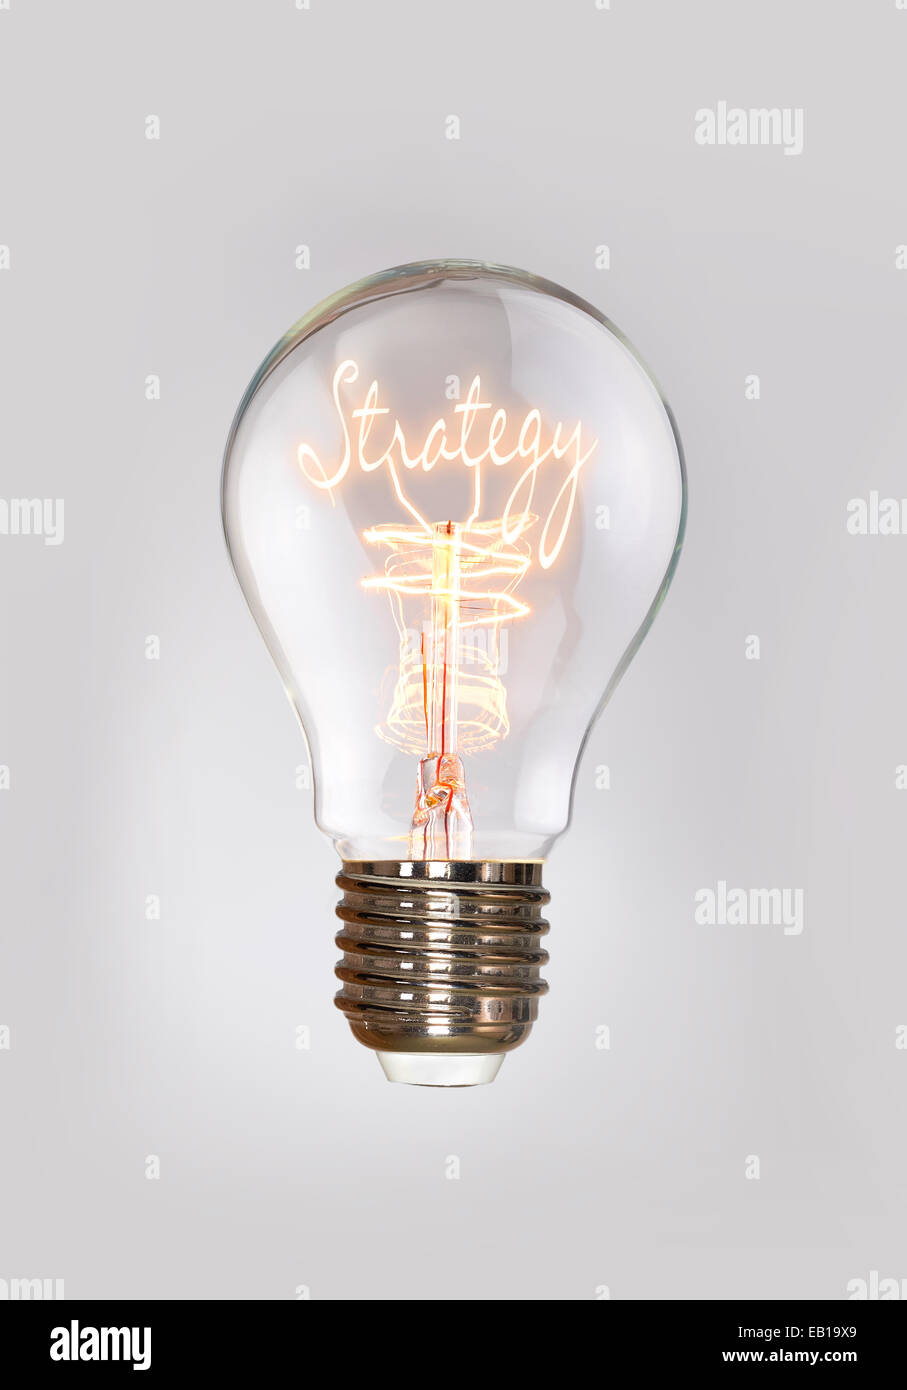 Strategy concept in a filament light bulb. - Stock Image